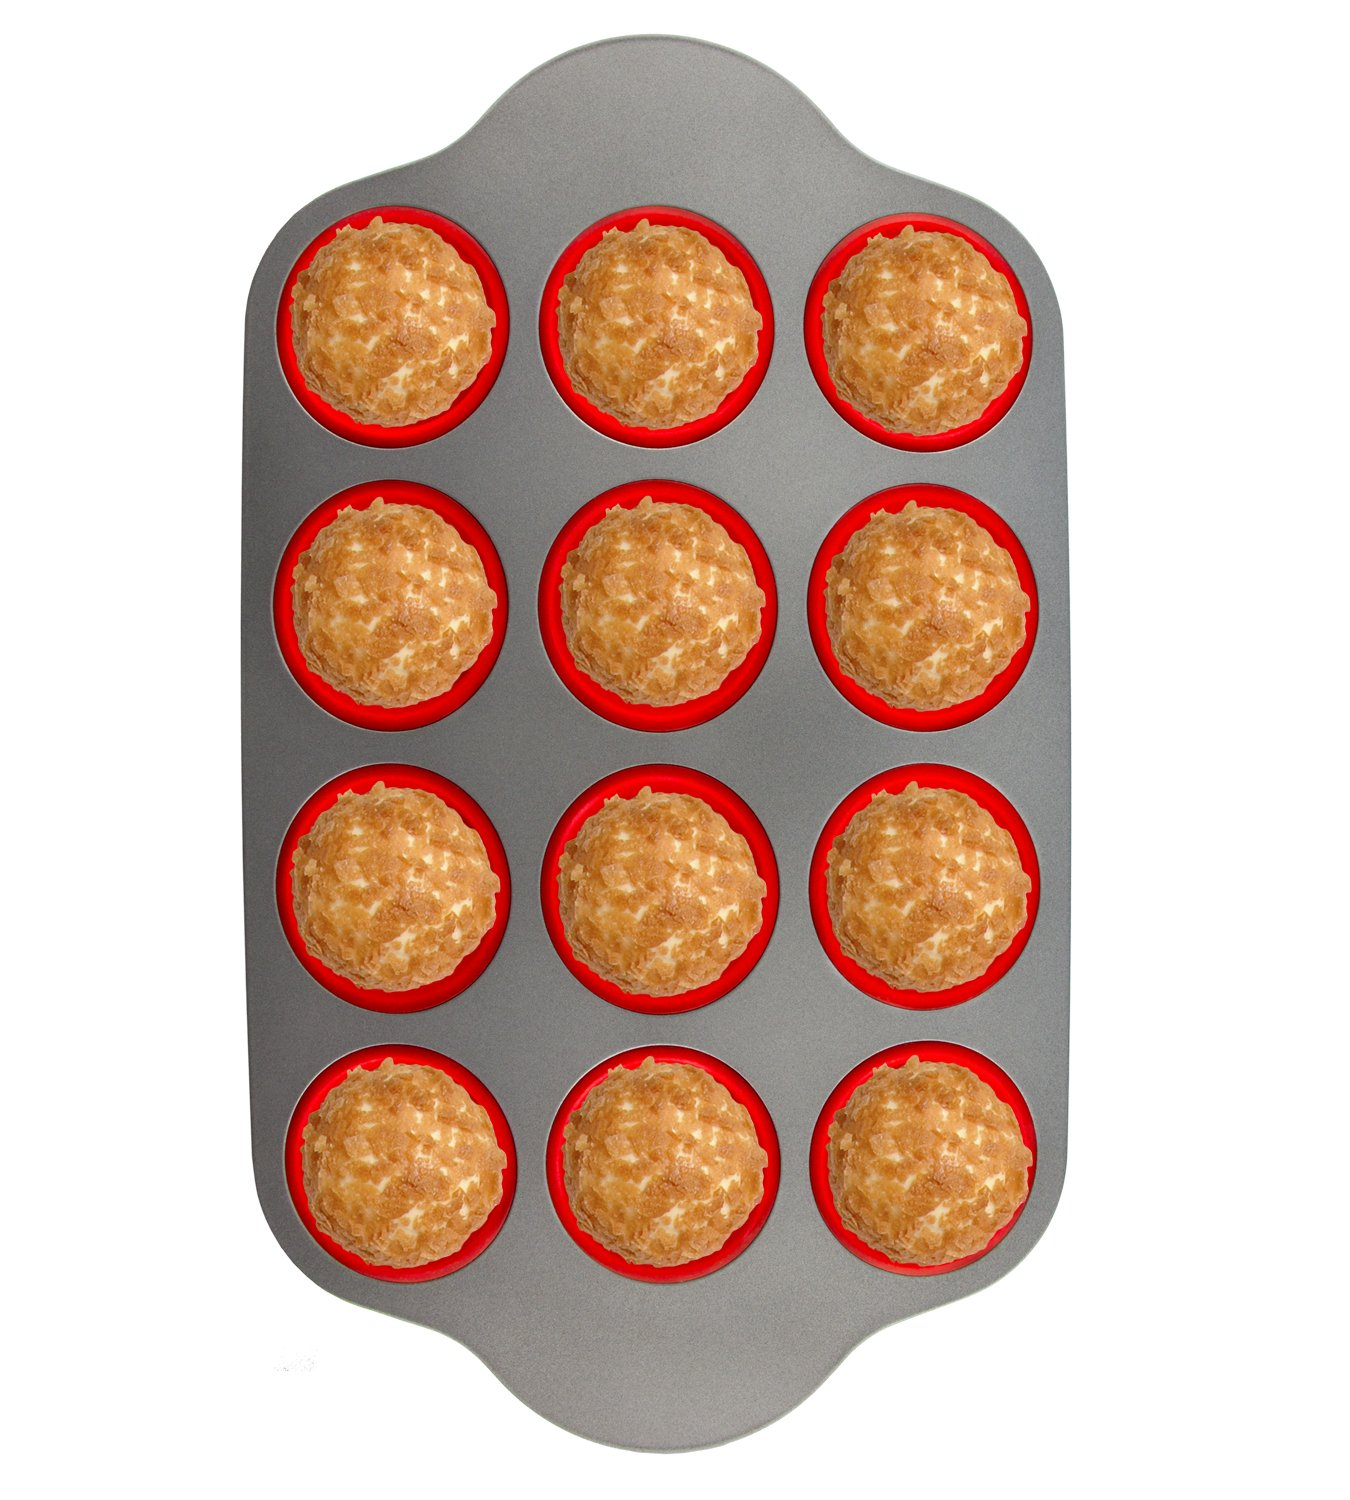 Silicone Muffin Pan With Steel Frame, 12 Cups Full Size | Professional Non-Stick Baking Molds by Boxiki Kitchen | FDA Approved BPA-Free Bakeware | Silicone 12 Cup Muffin Mold